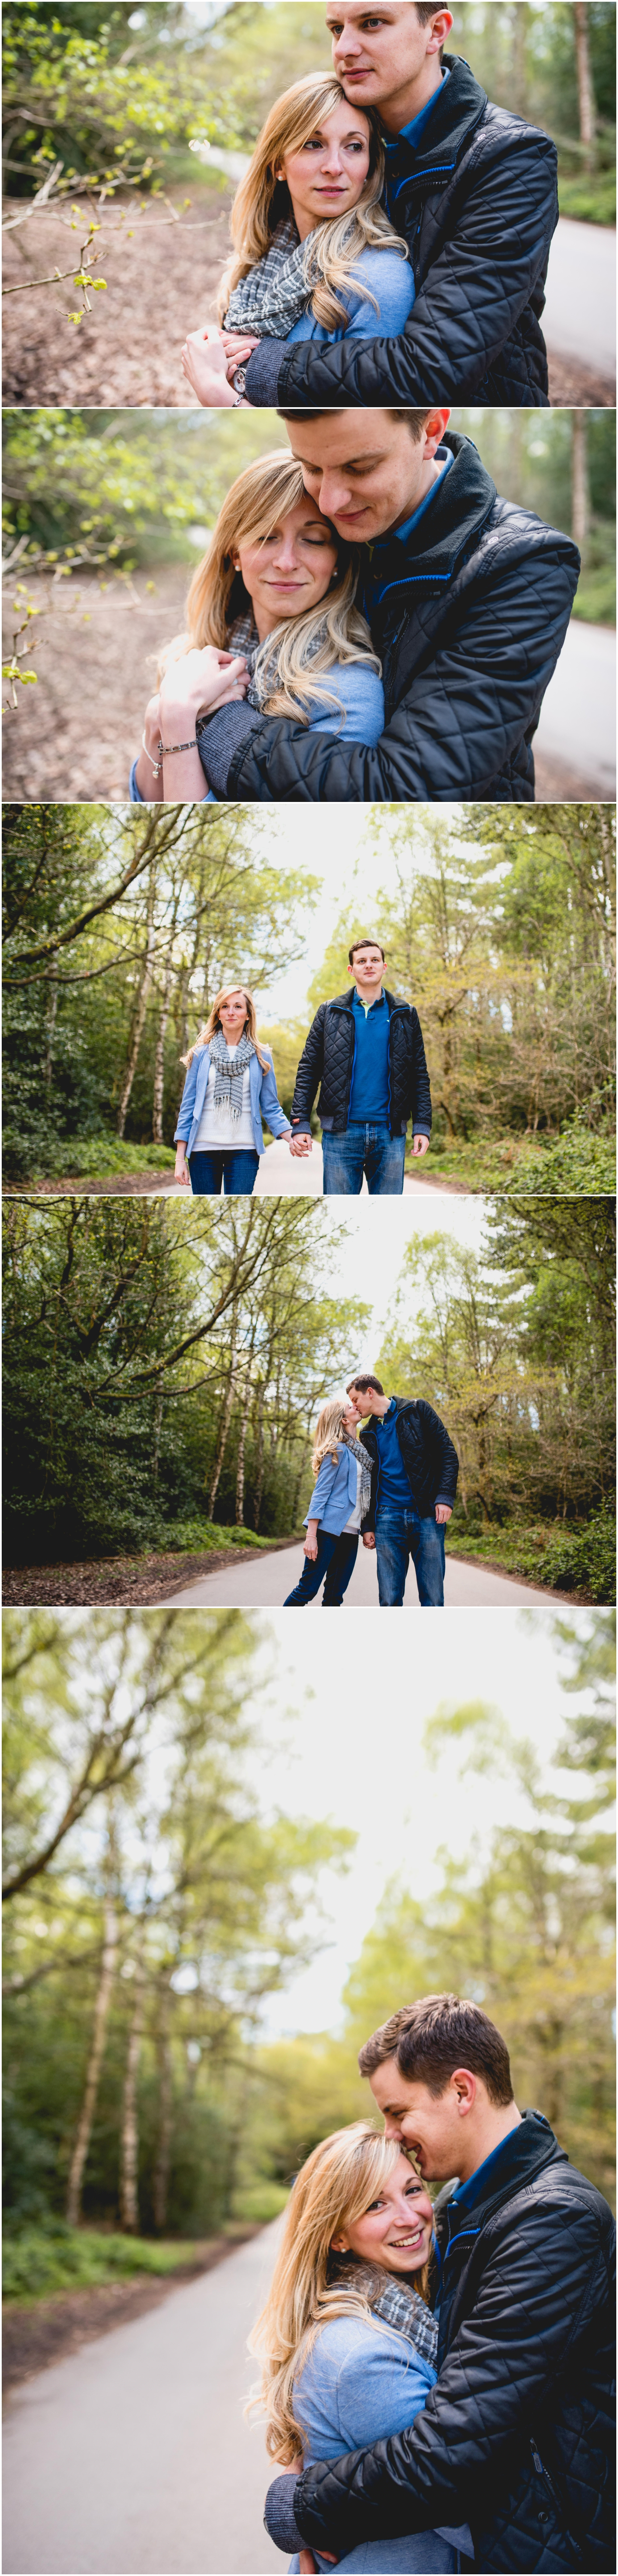 Helen and Dan, Pendrell Hall Wedding, Engagement Shoot in Sutton Park, Sutton Coldfield with Lisa Carpenter Photography